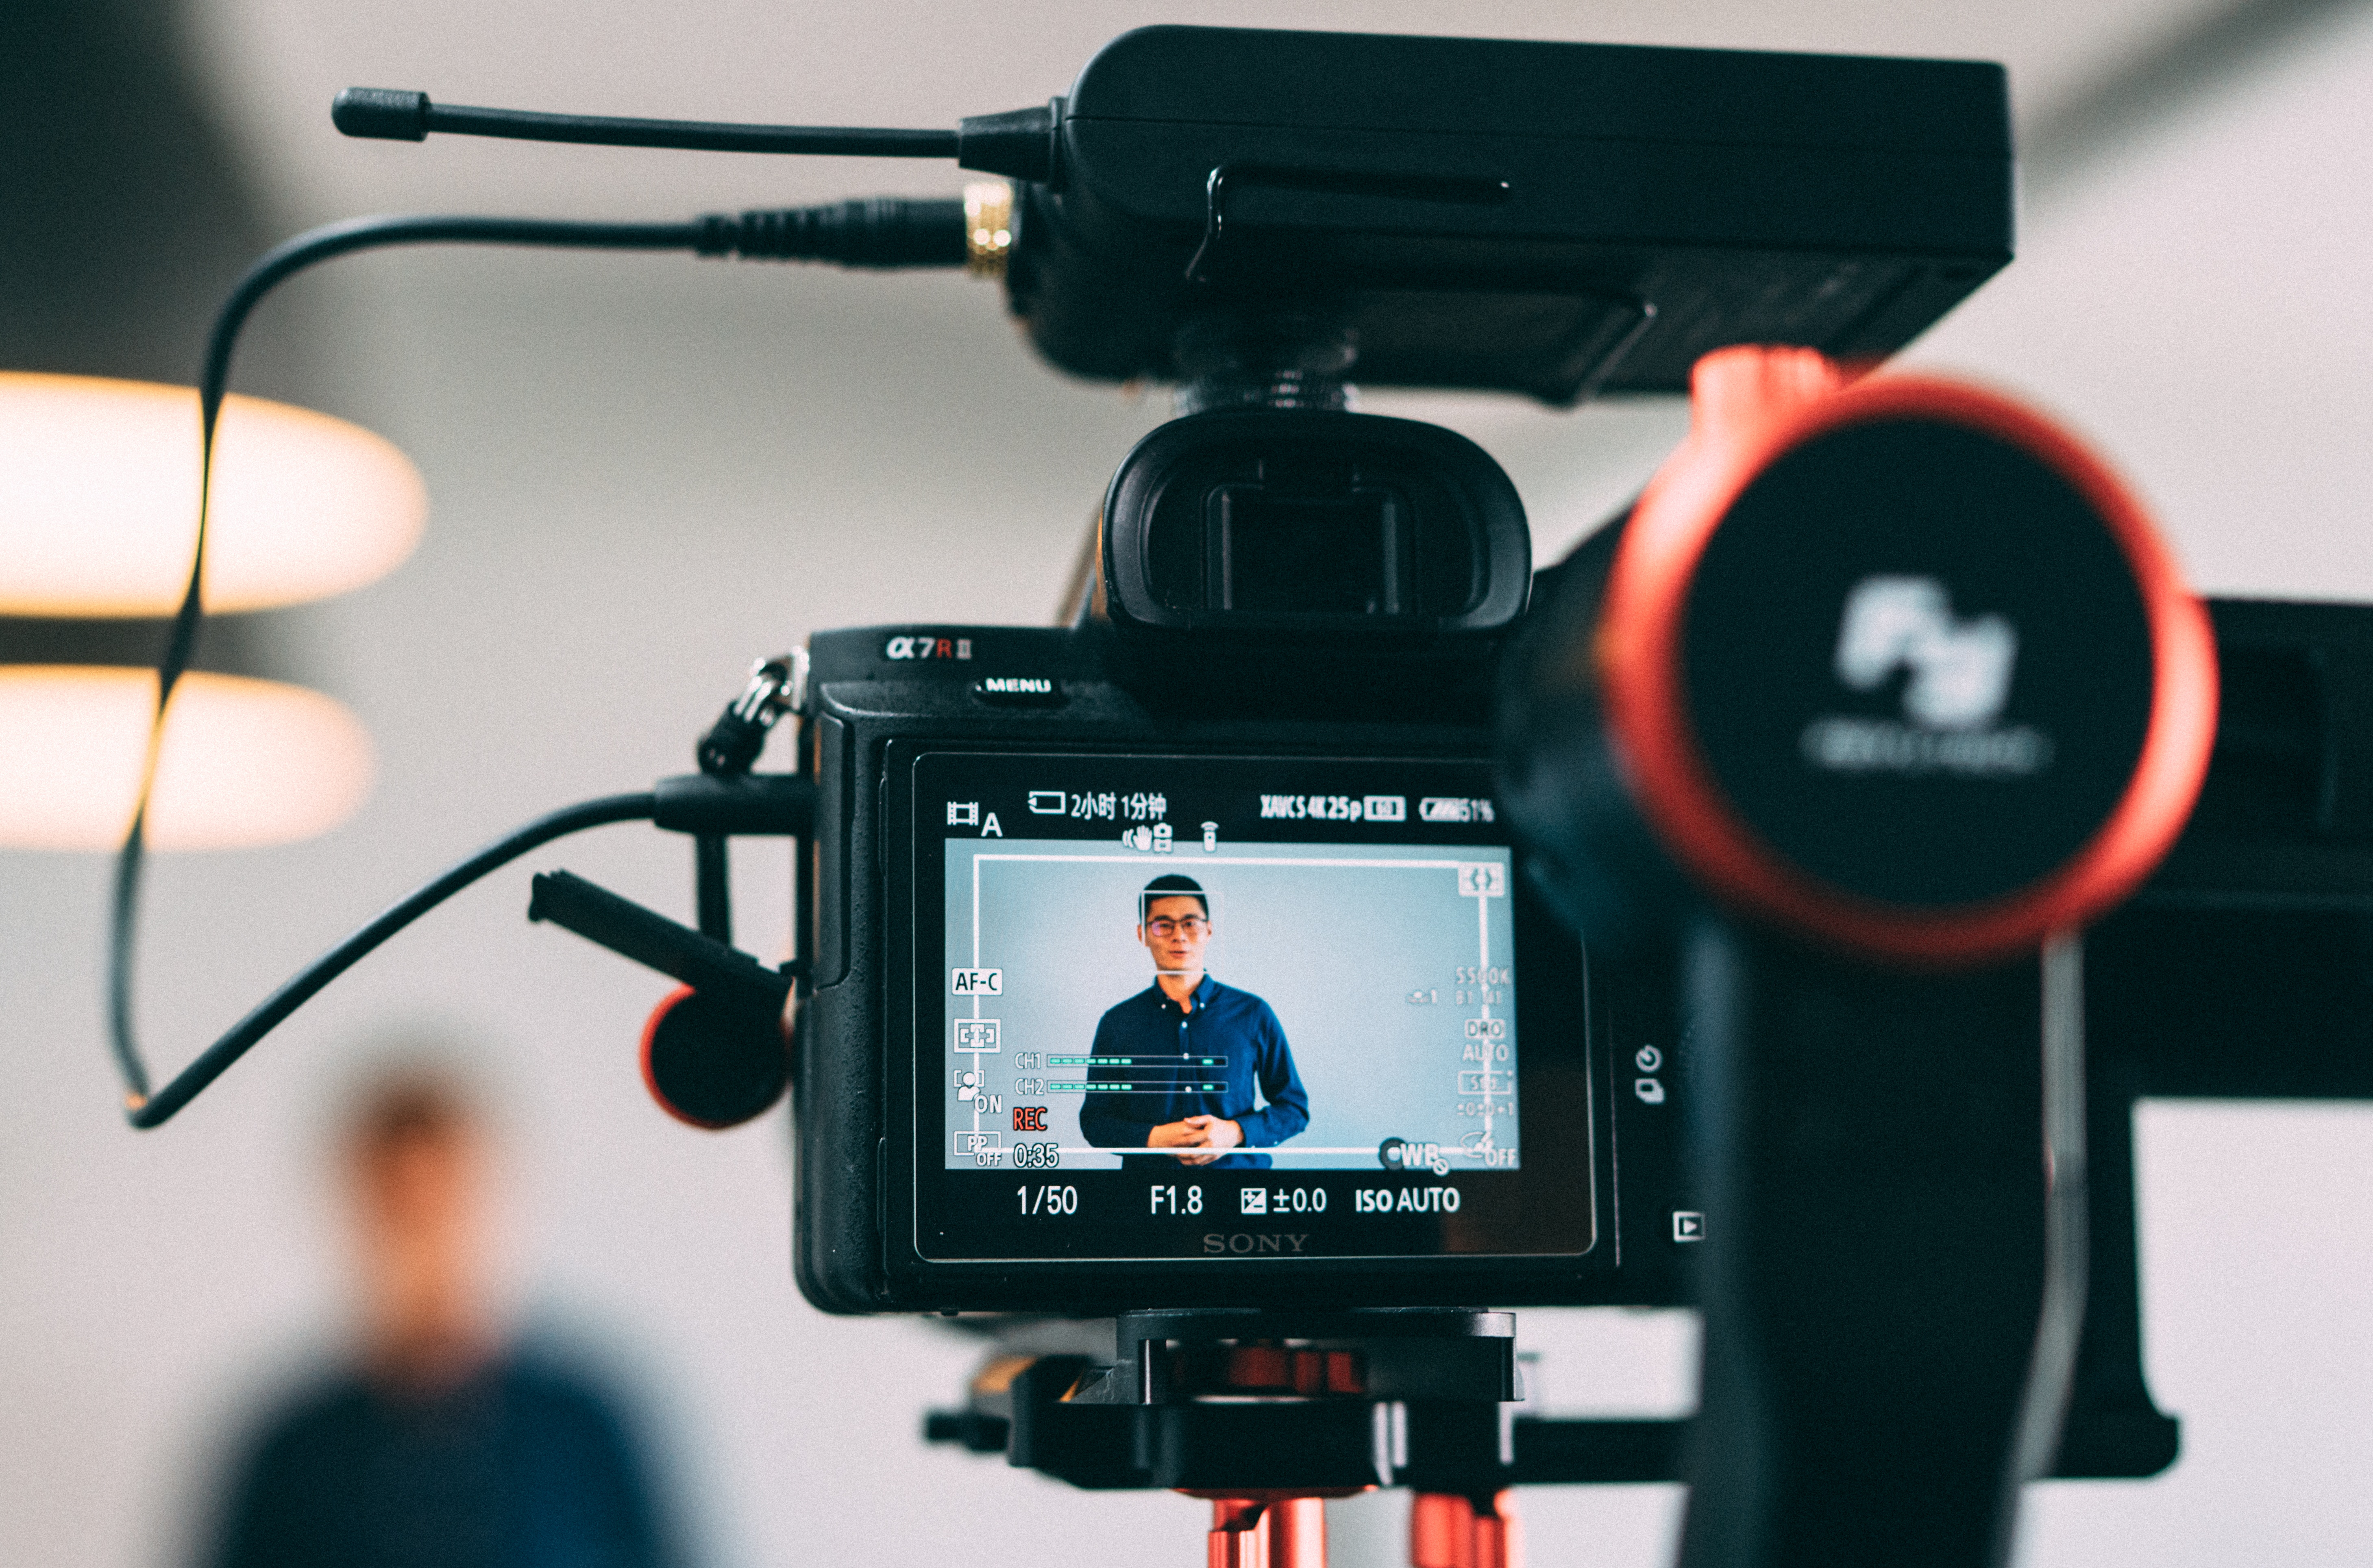 Filming a presentation can help you review your presentation.